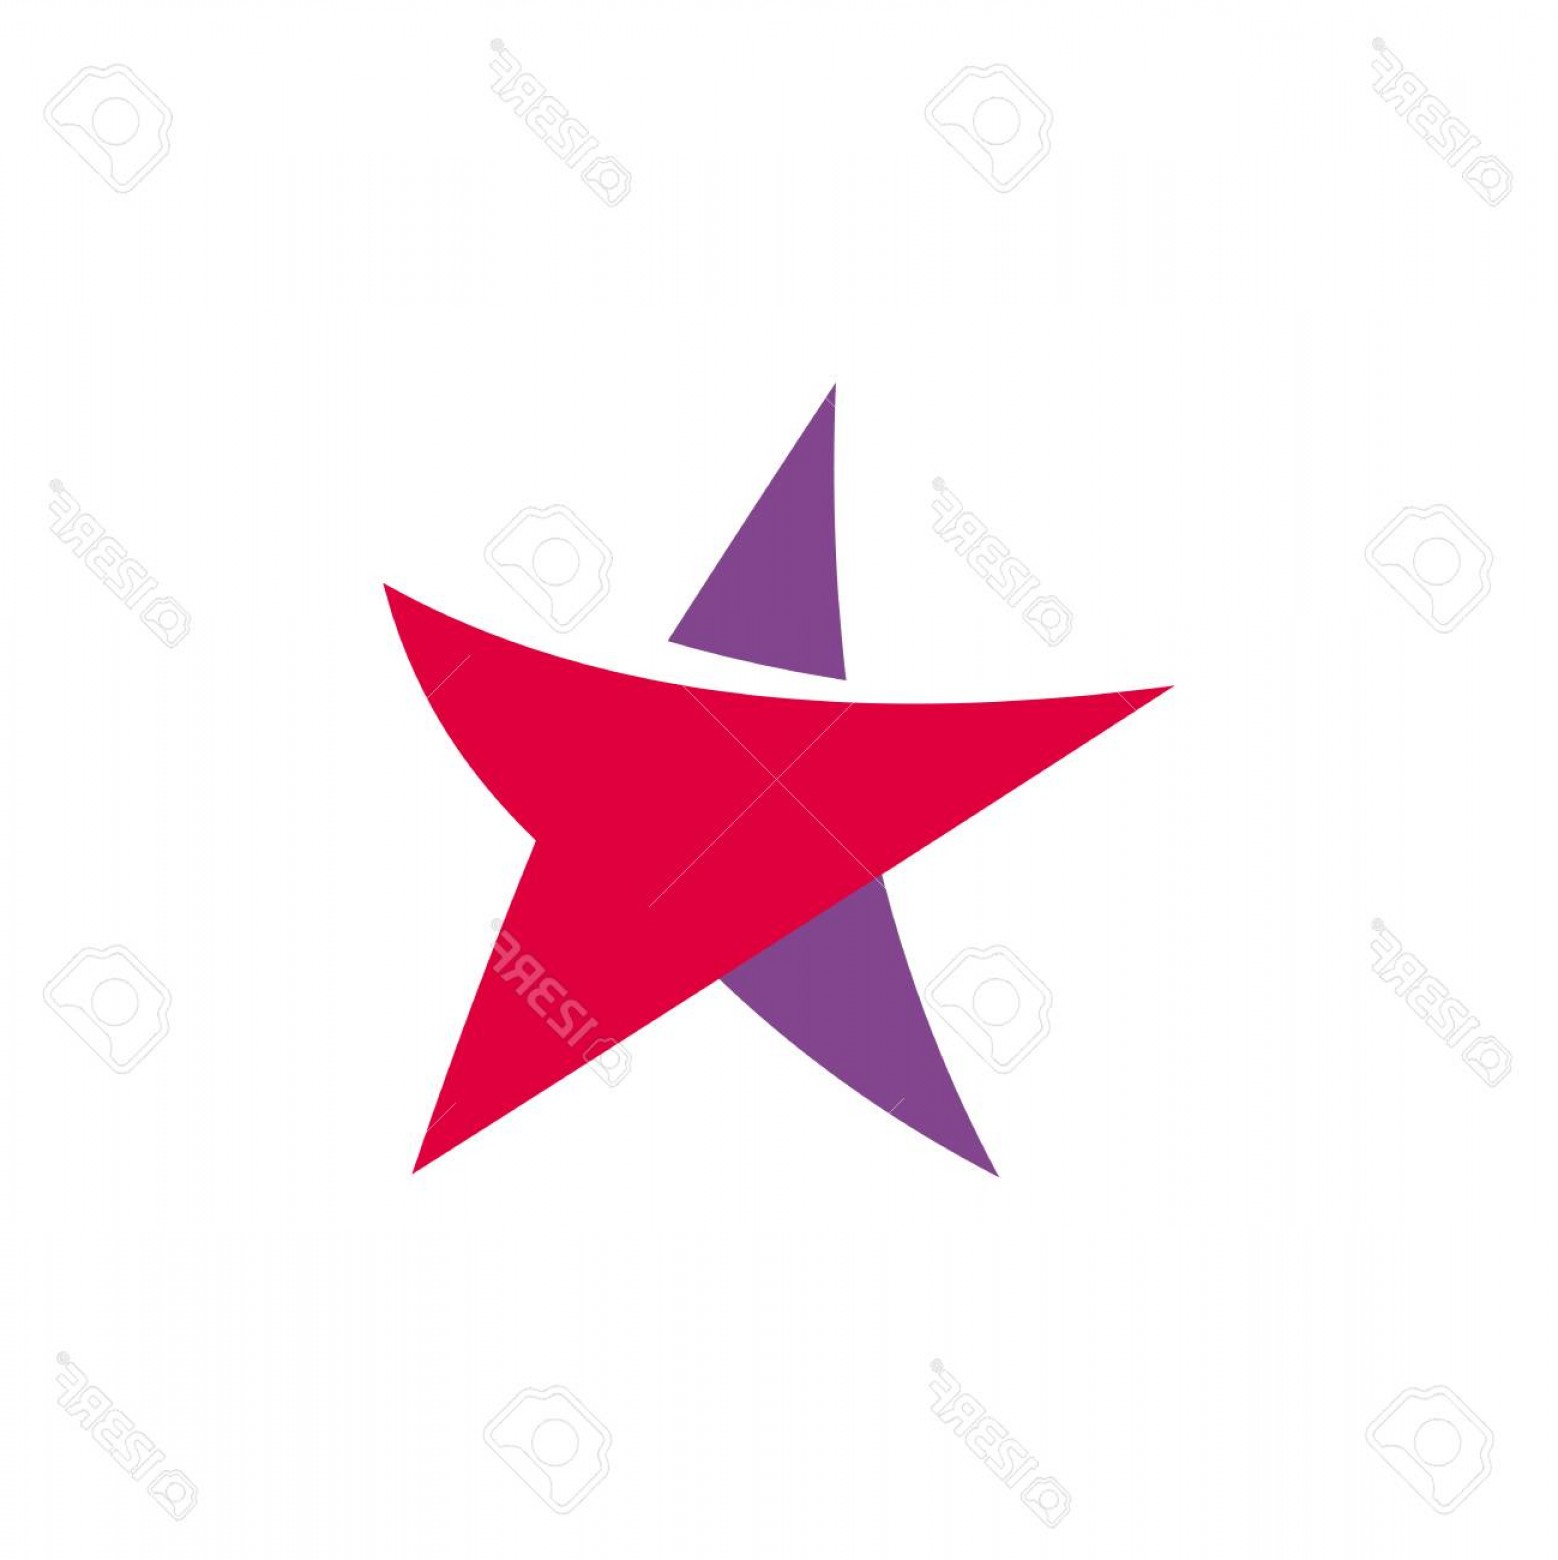 BBB Logo In Vector Form: Photostock Vector Fantastic Isolated Simple Flat Red And Violet Color Star Logo Of Unusual Shape Vector Logotype And I